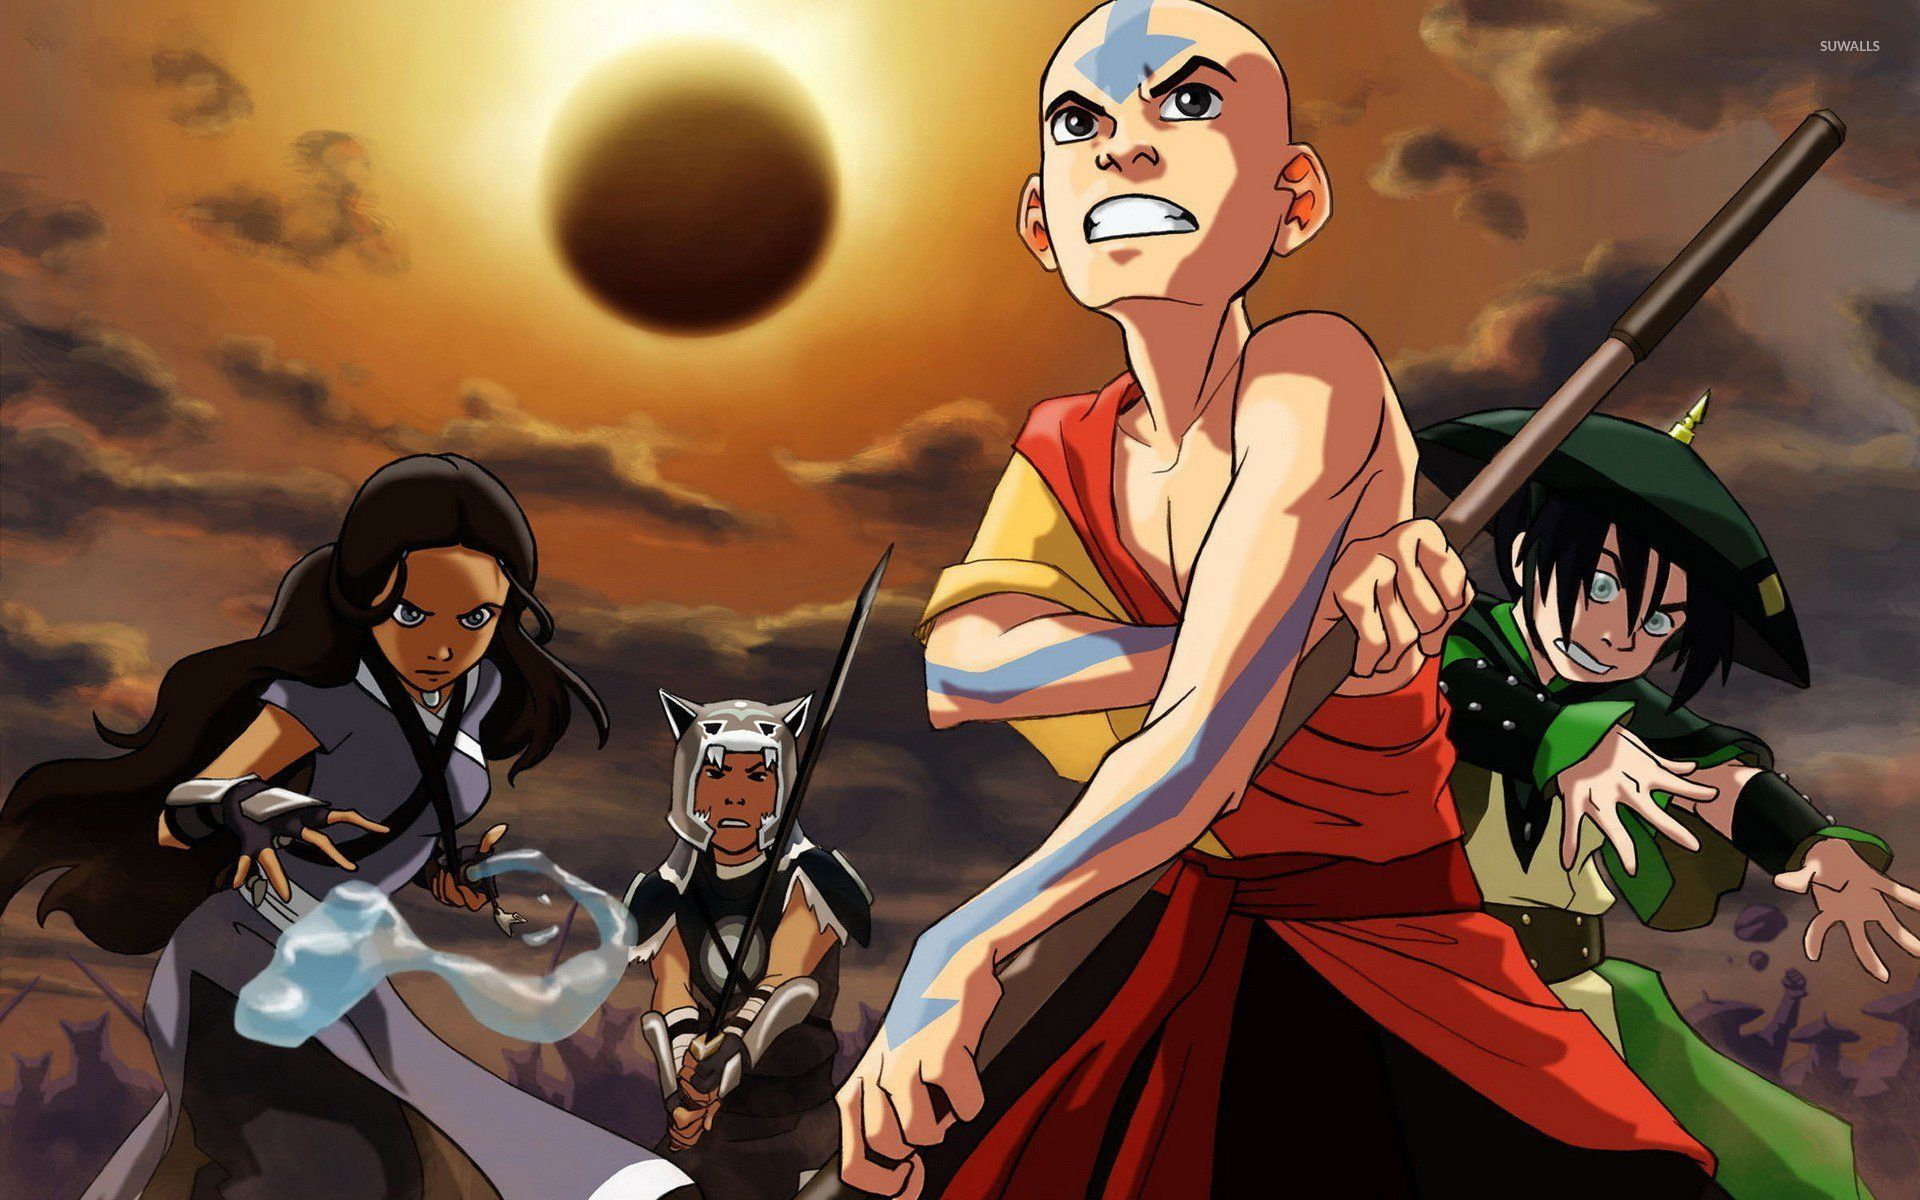 Avatar The Last Air Bender Wallpaper For Mobile Phone Tablet Desktop Computer And Other The Last Airbender Anime Avatar The Last Airbender The Last Airbender